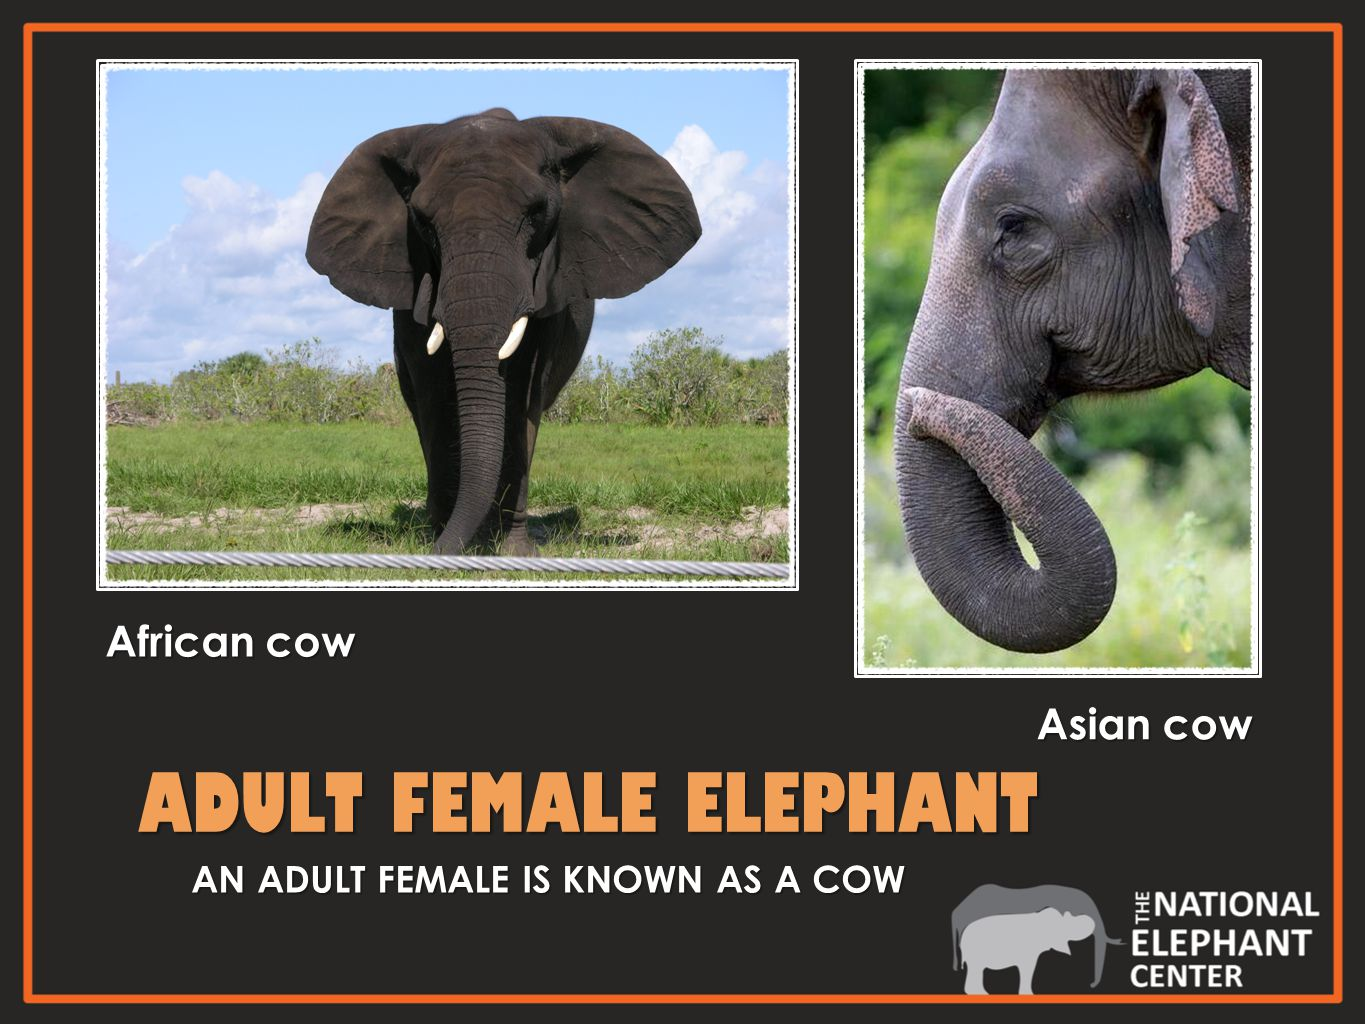 ADULT FEMALE ELEPHANT ADULT FEMALE ELEPHANT AN ADULT FEMALE IS KNOWN AS A COW African cow Asian cow